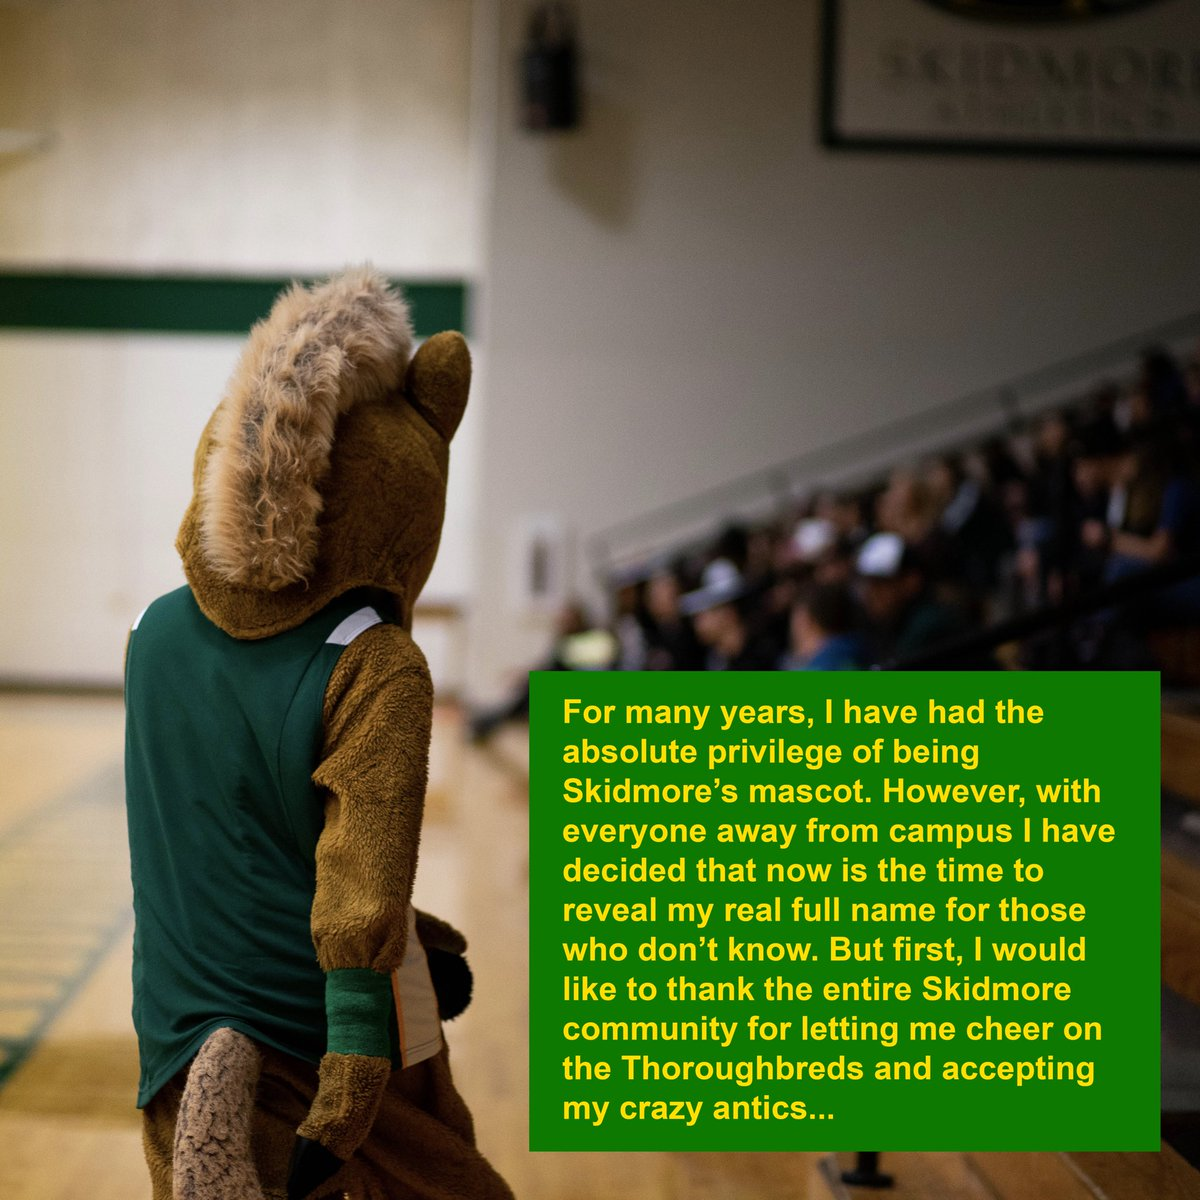 I am revealing my real full name. Please read. #MascotReveal https://t.co/r7QcJ9Y41S